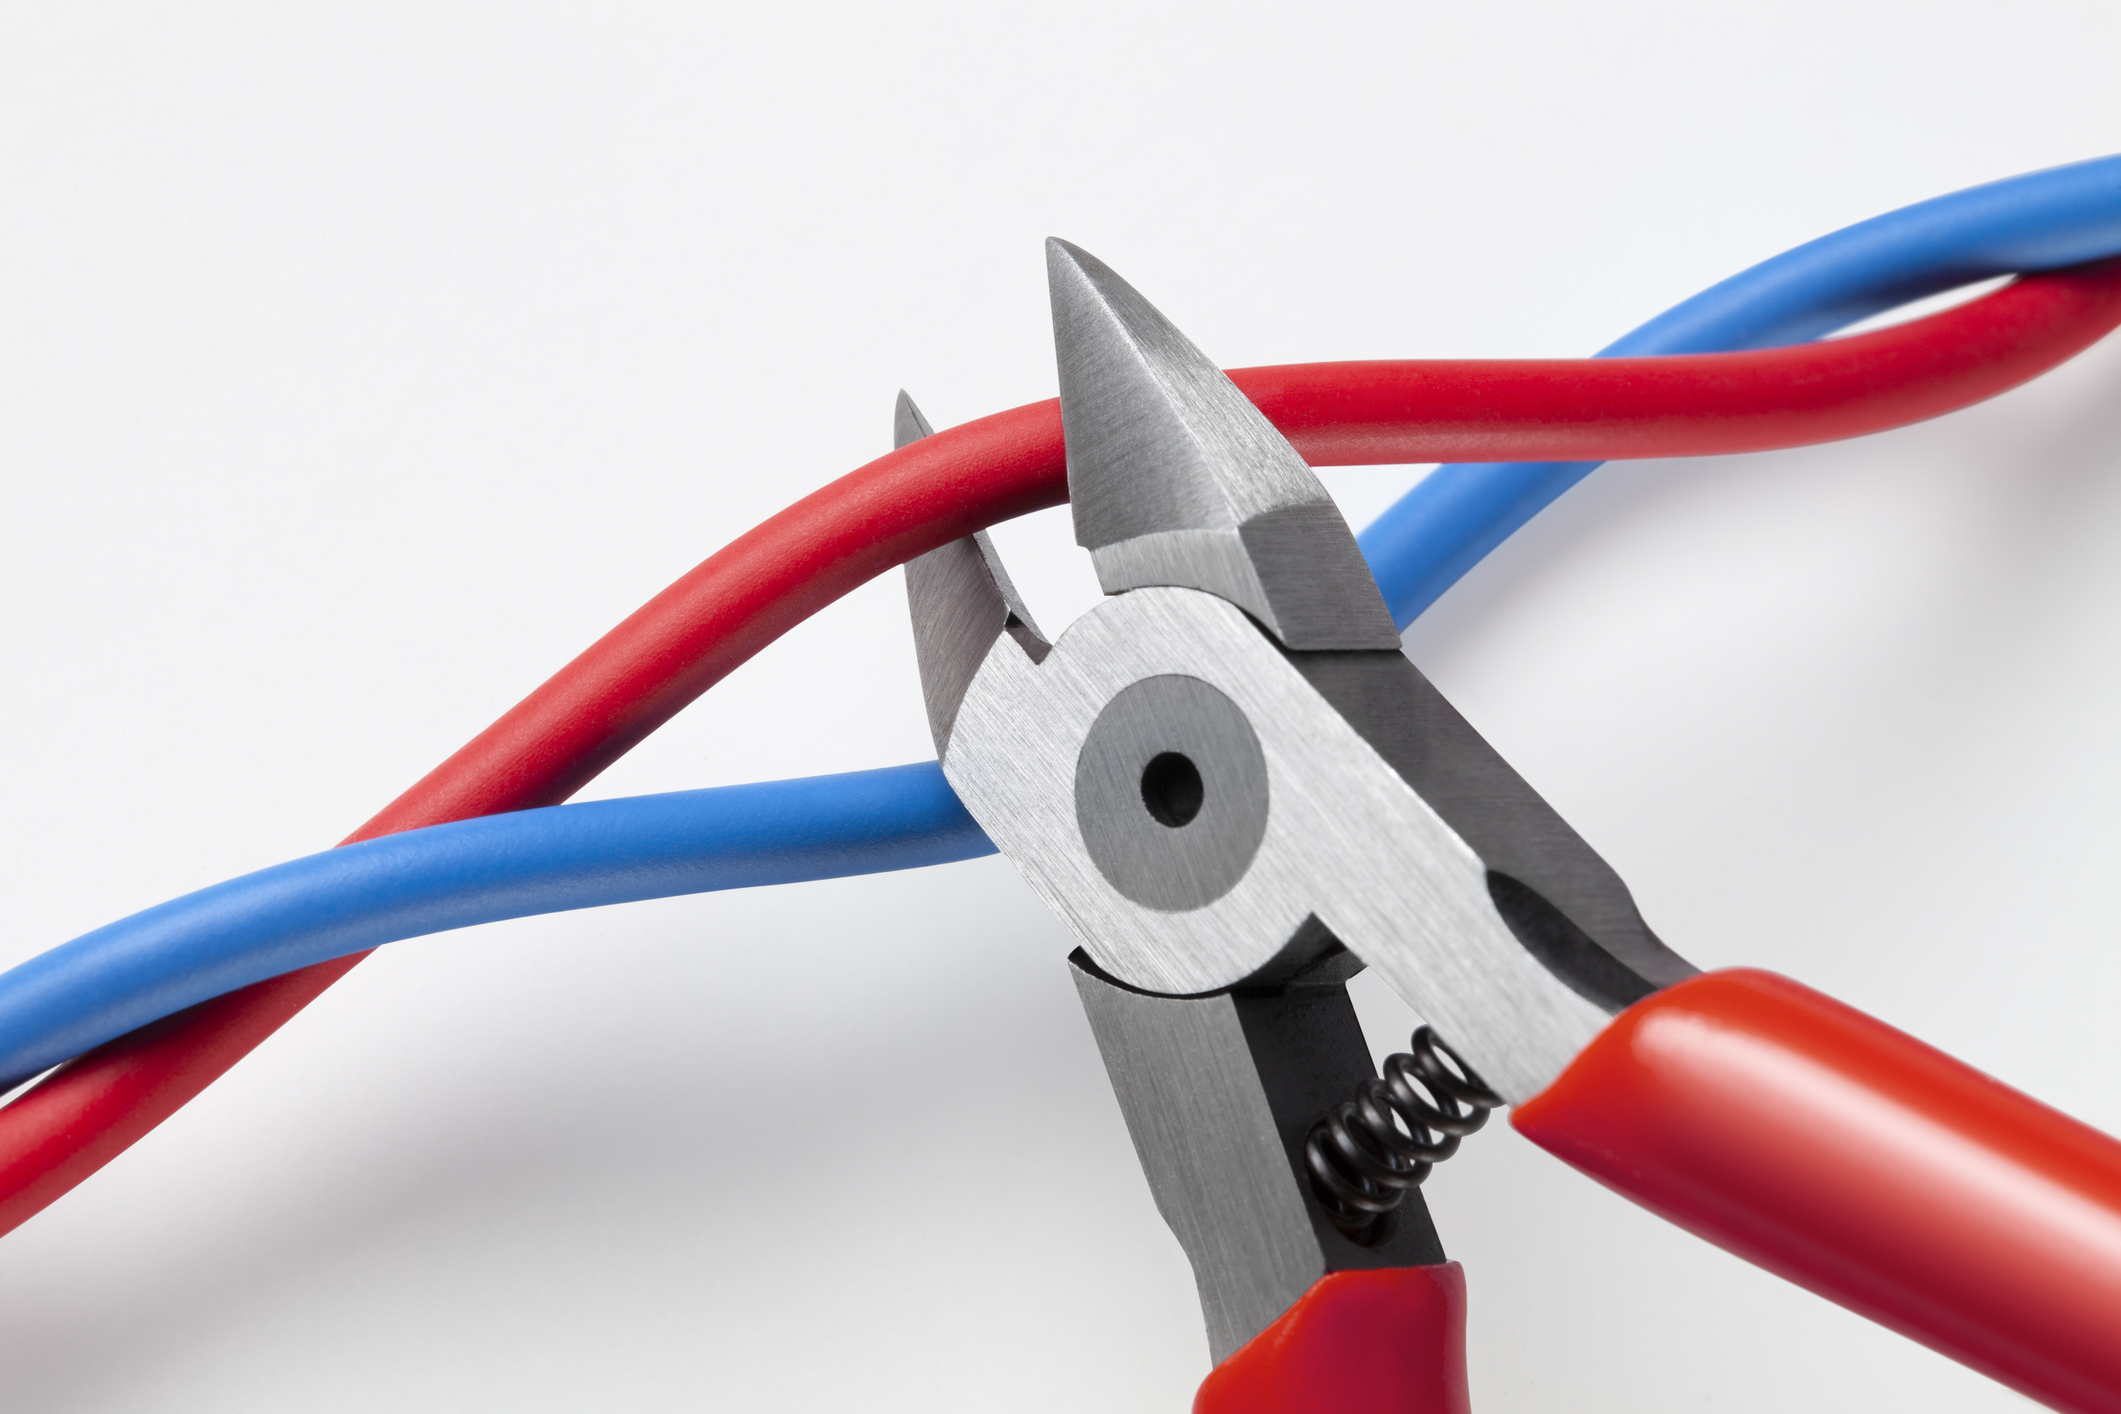 cutting explosives wires